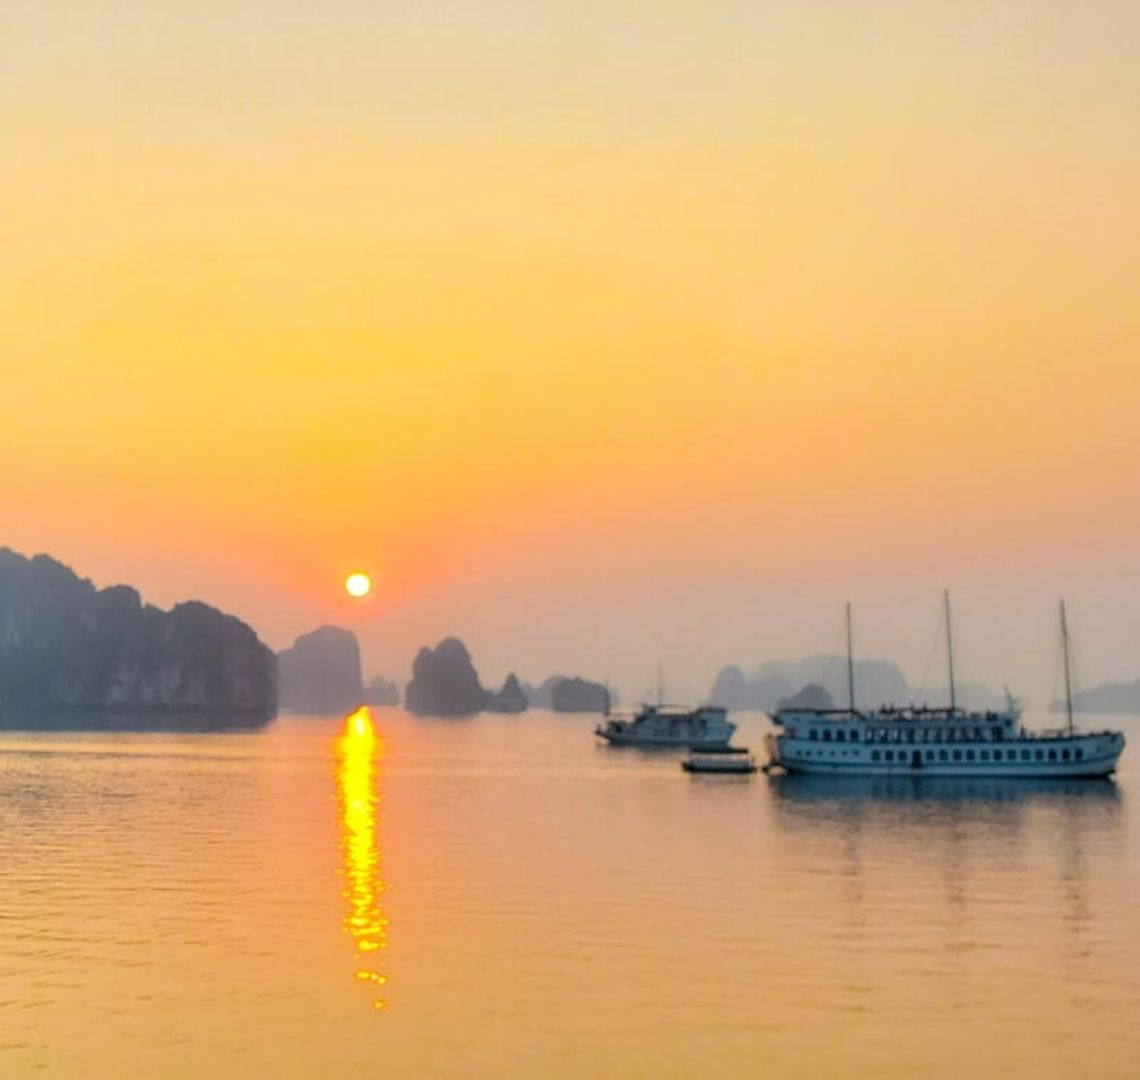 Best secret islands in Cambodia, Vietnam and Laos With Kids - the sun is setting in Bai Tu Long in Halong Bay. There are junk ships on the still water in the foreground and shadowy limestone rocks and islands in the background. The sky is bright orange and the tiny setting sun sets off an orange stripe in its reflection in the water.